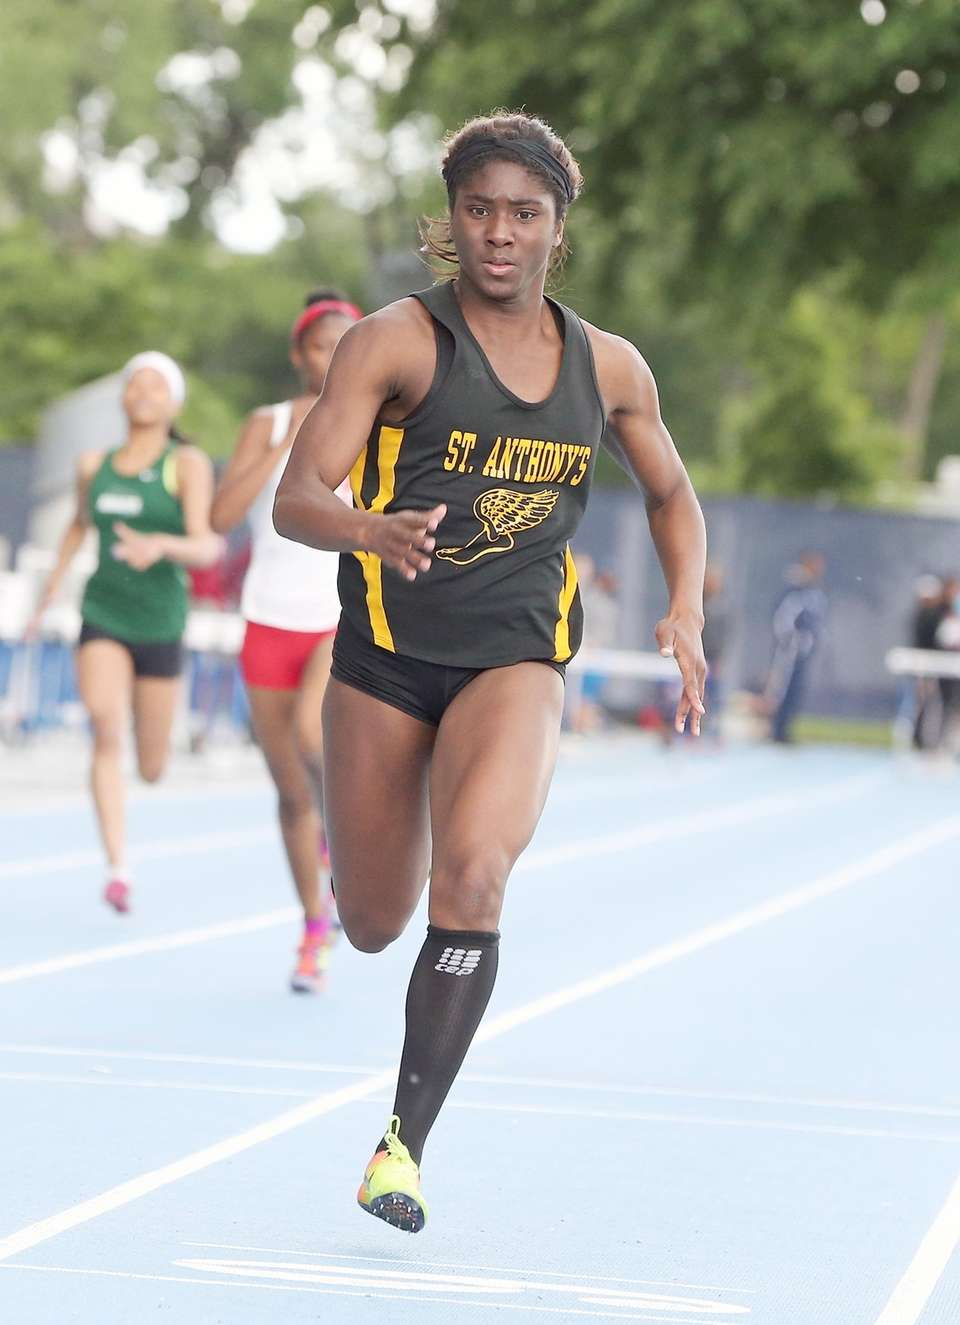 St. Anthony's Halle Hazzard takes first in the